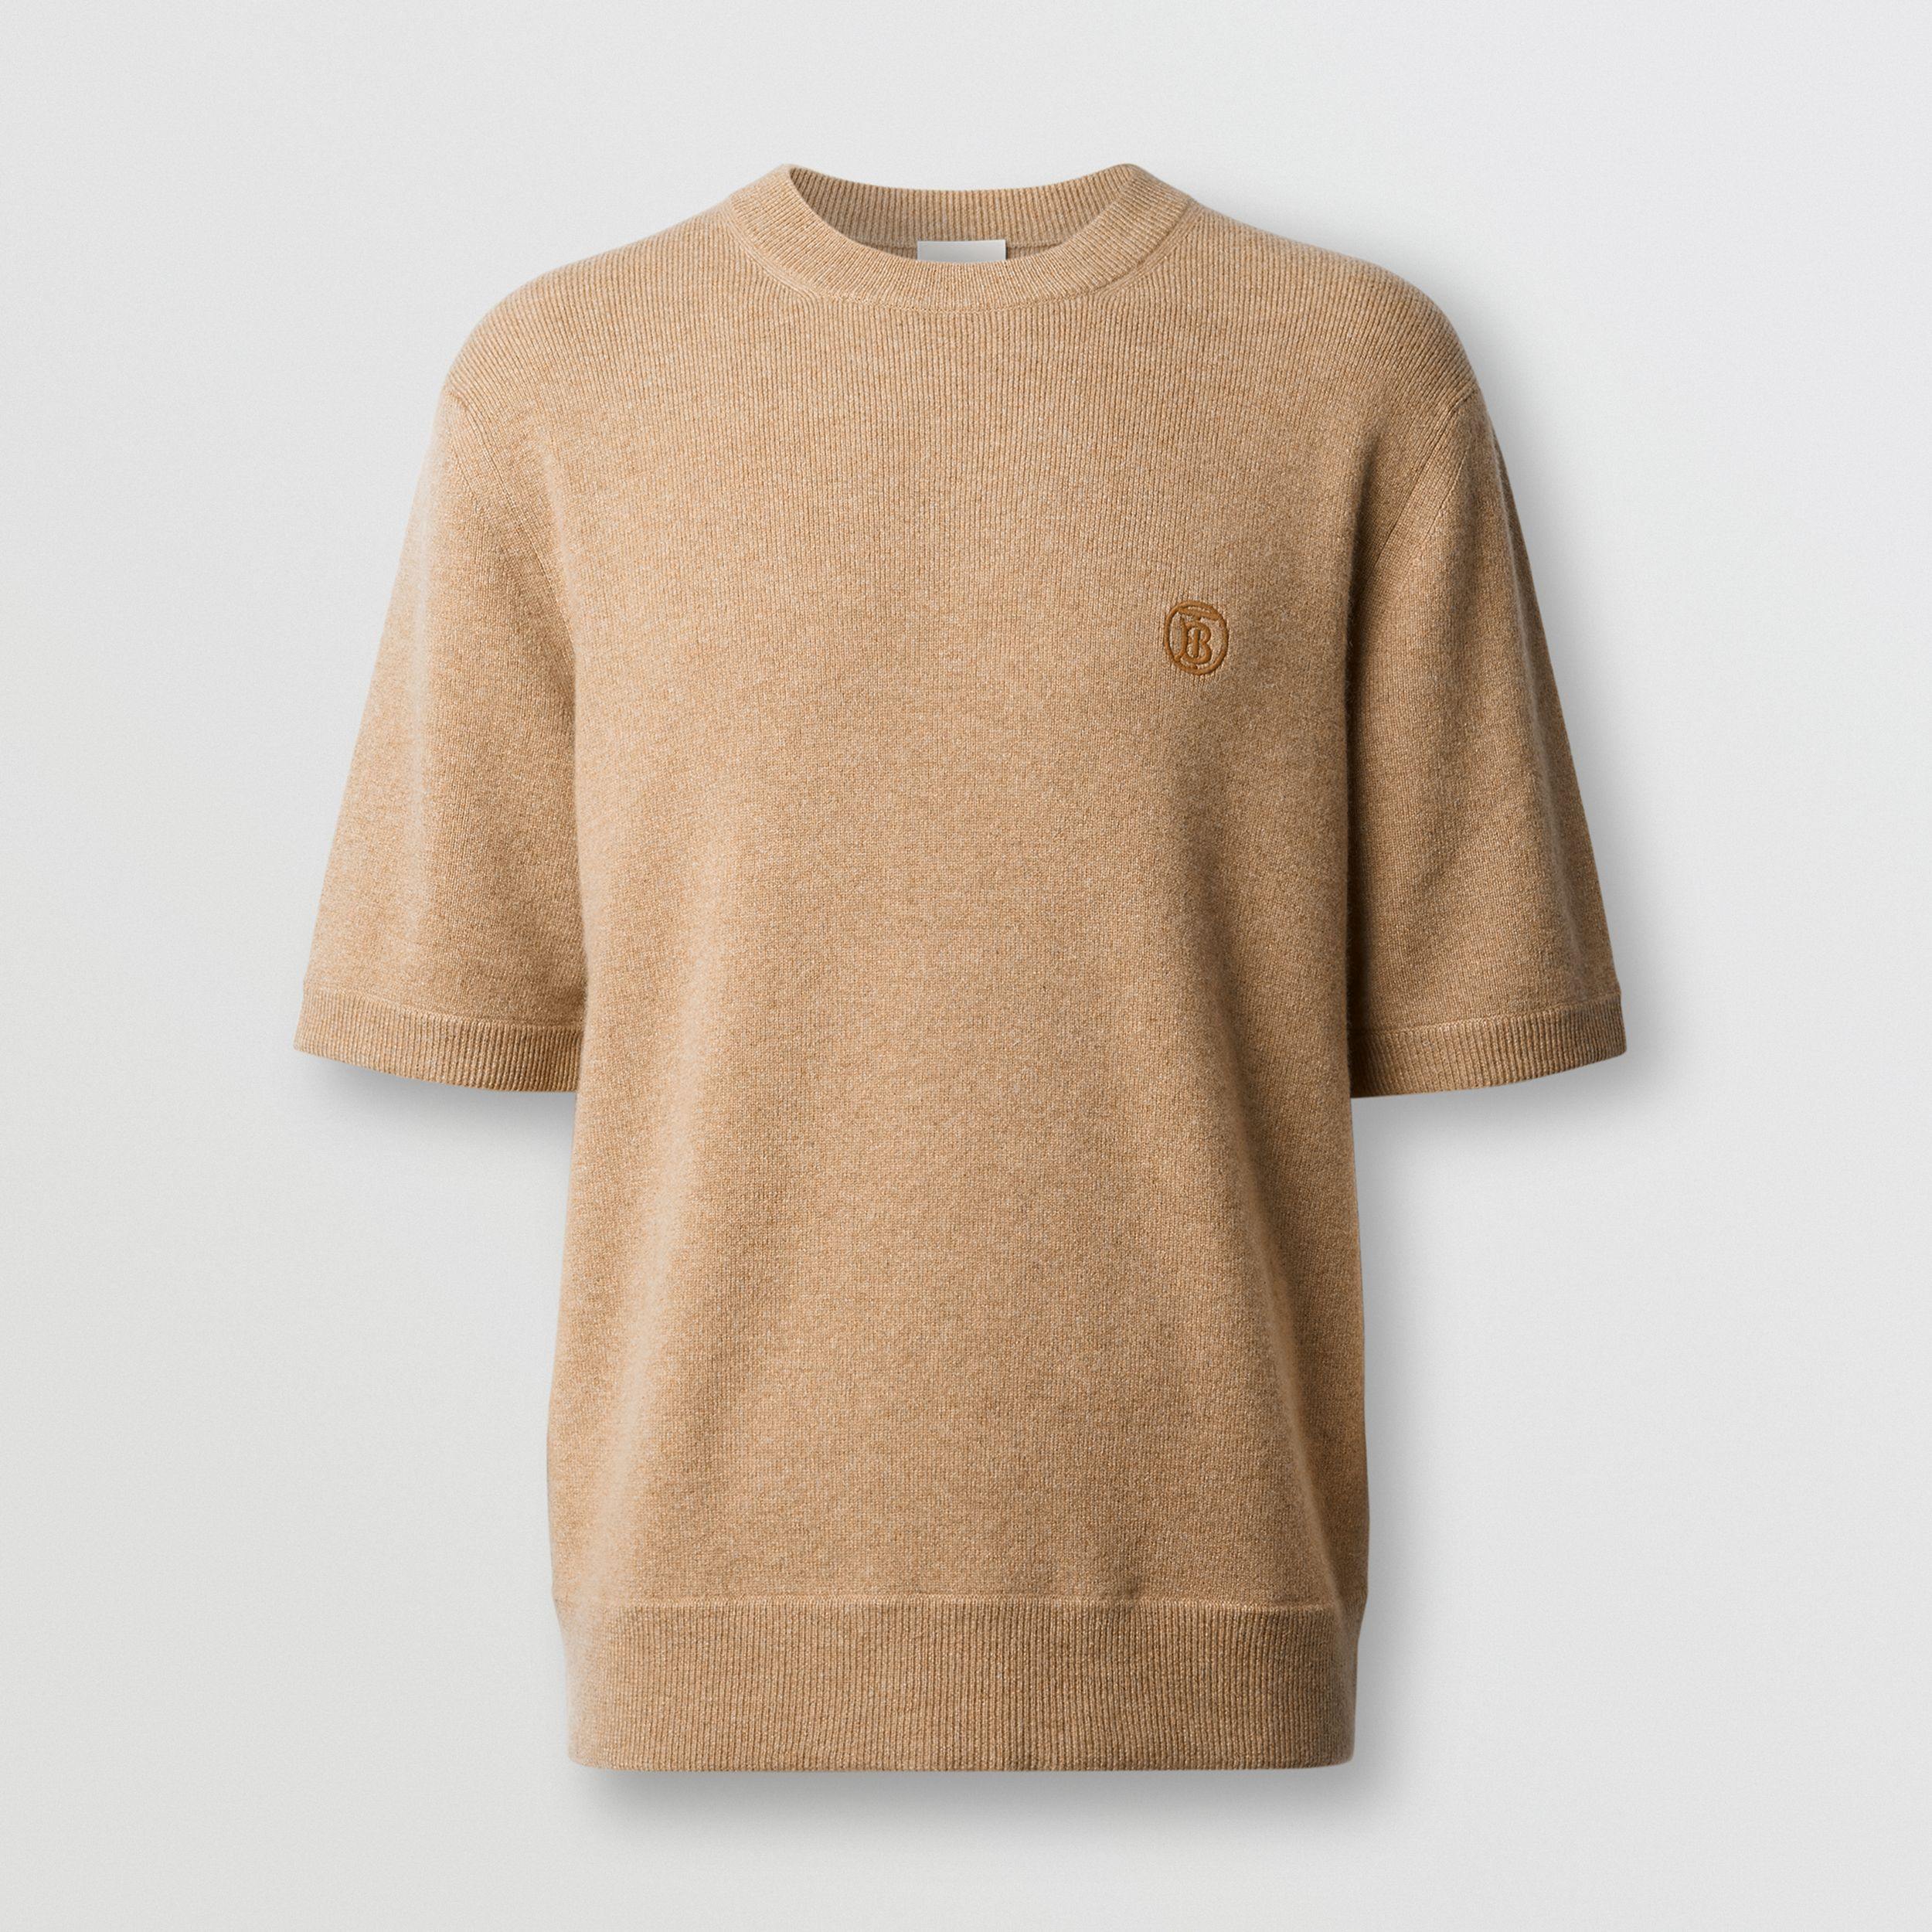 Short-sleeve Monogram Motif Cashmere Top in Pale Coffee - Men | Burberry - 4